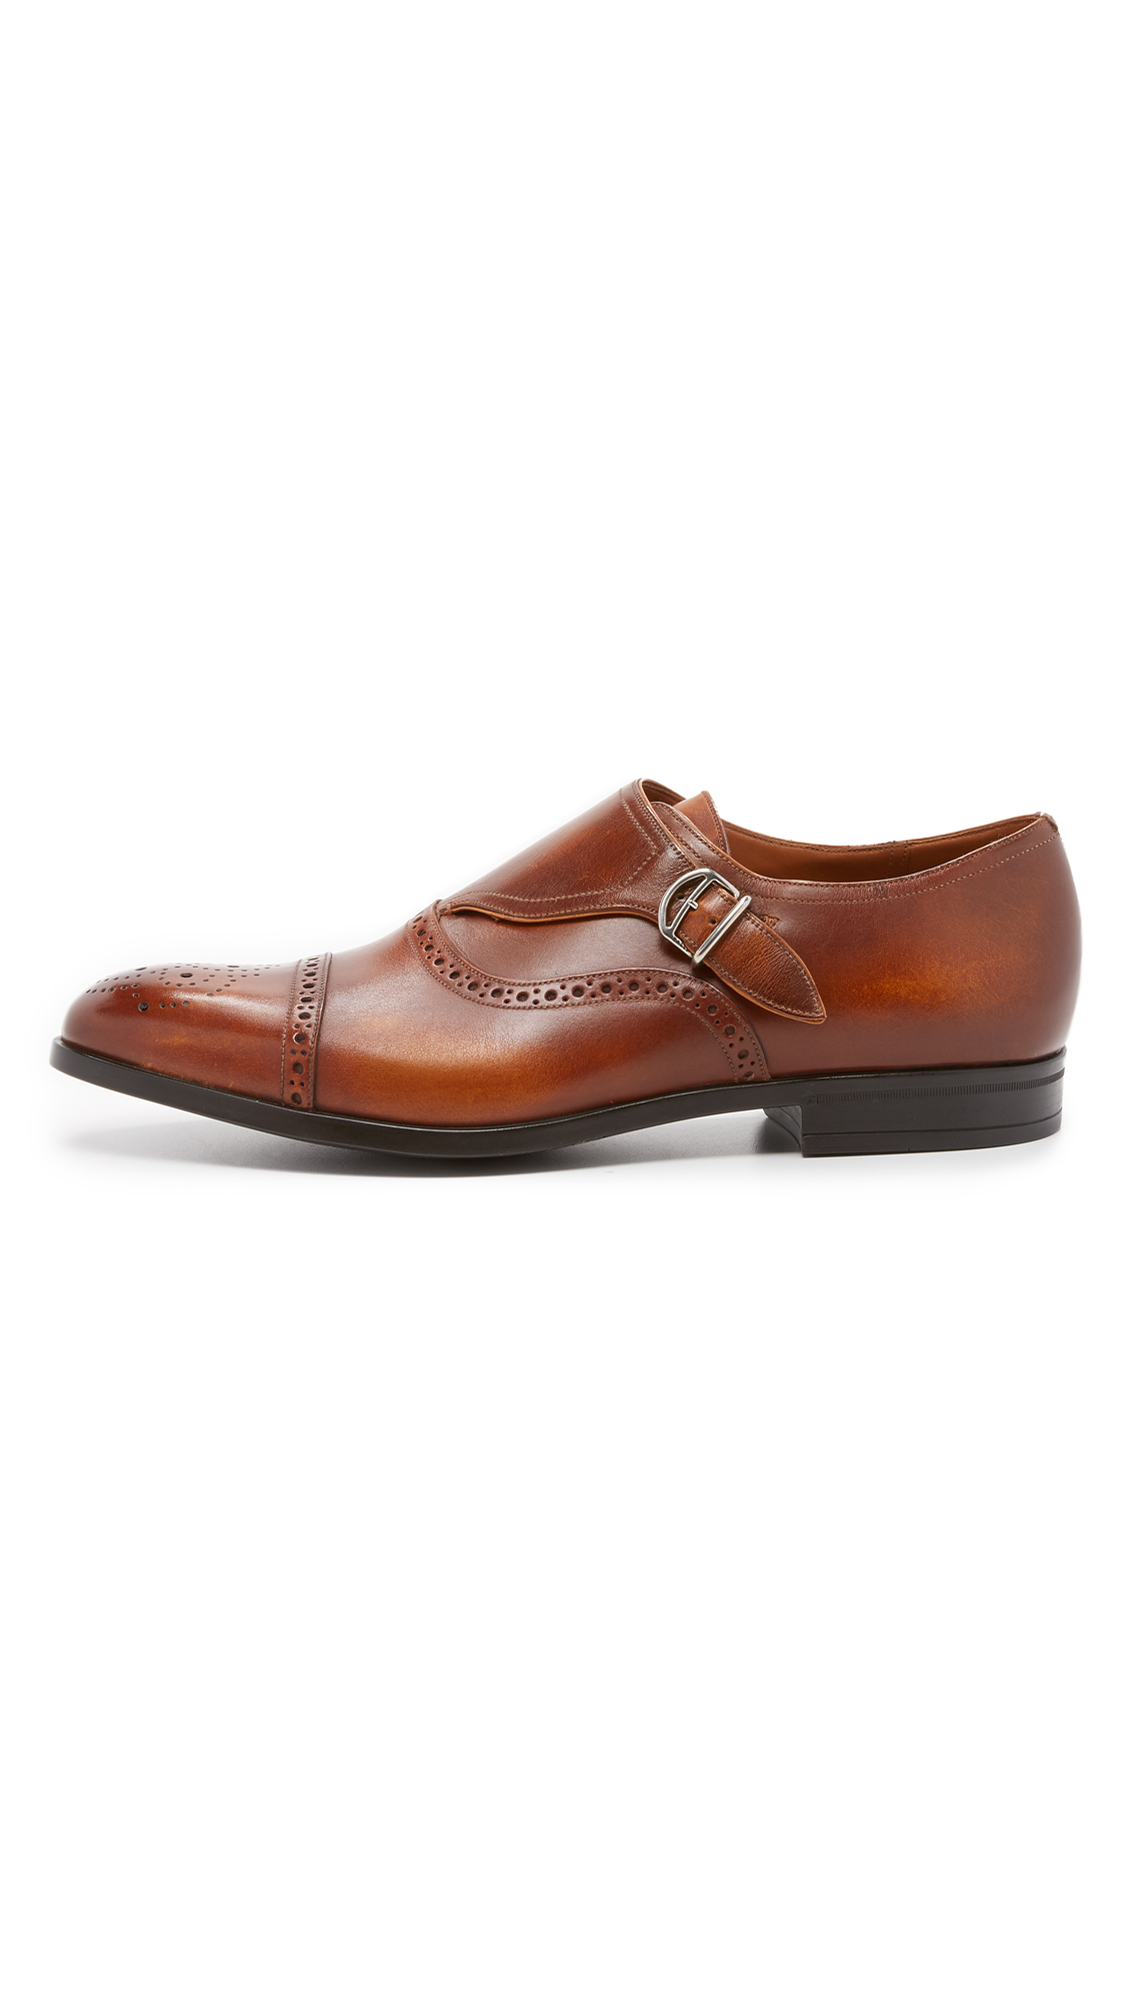 Bally Lanor Monkstrap Shoes In Brown For Men